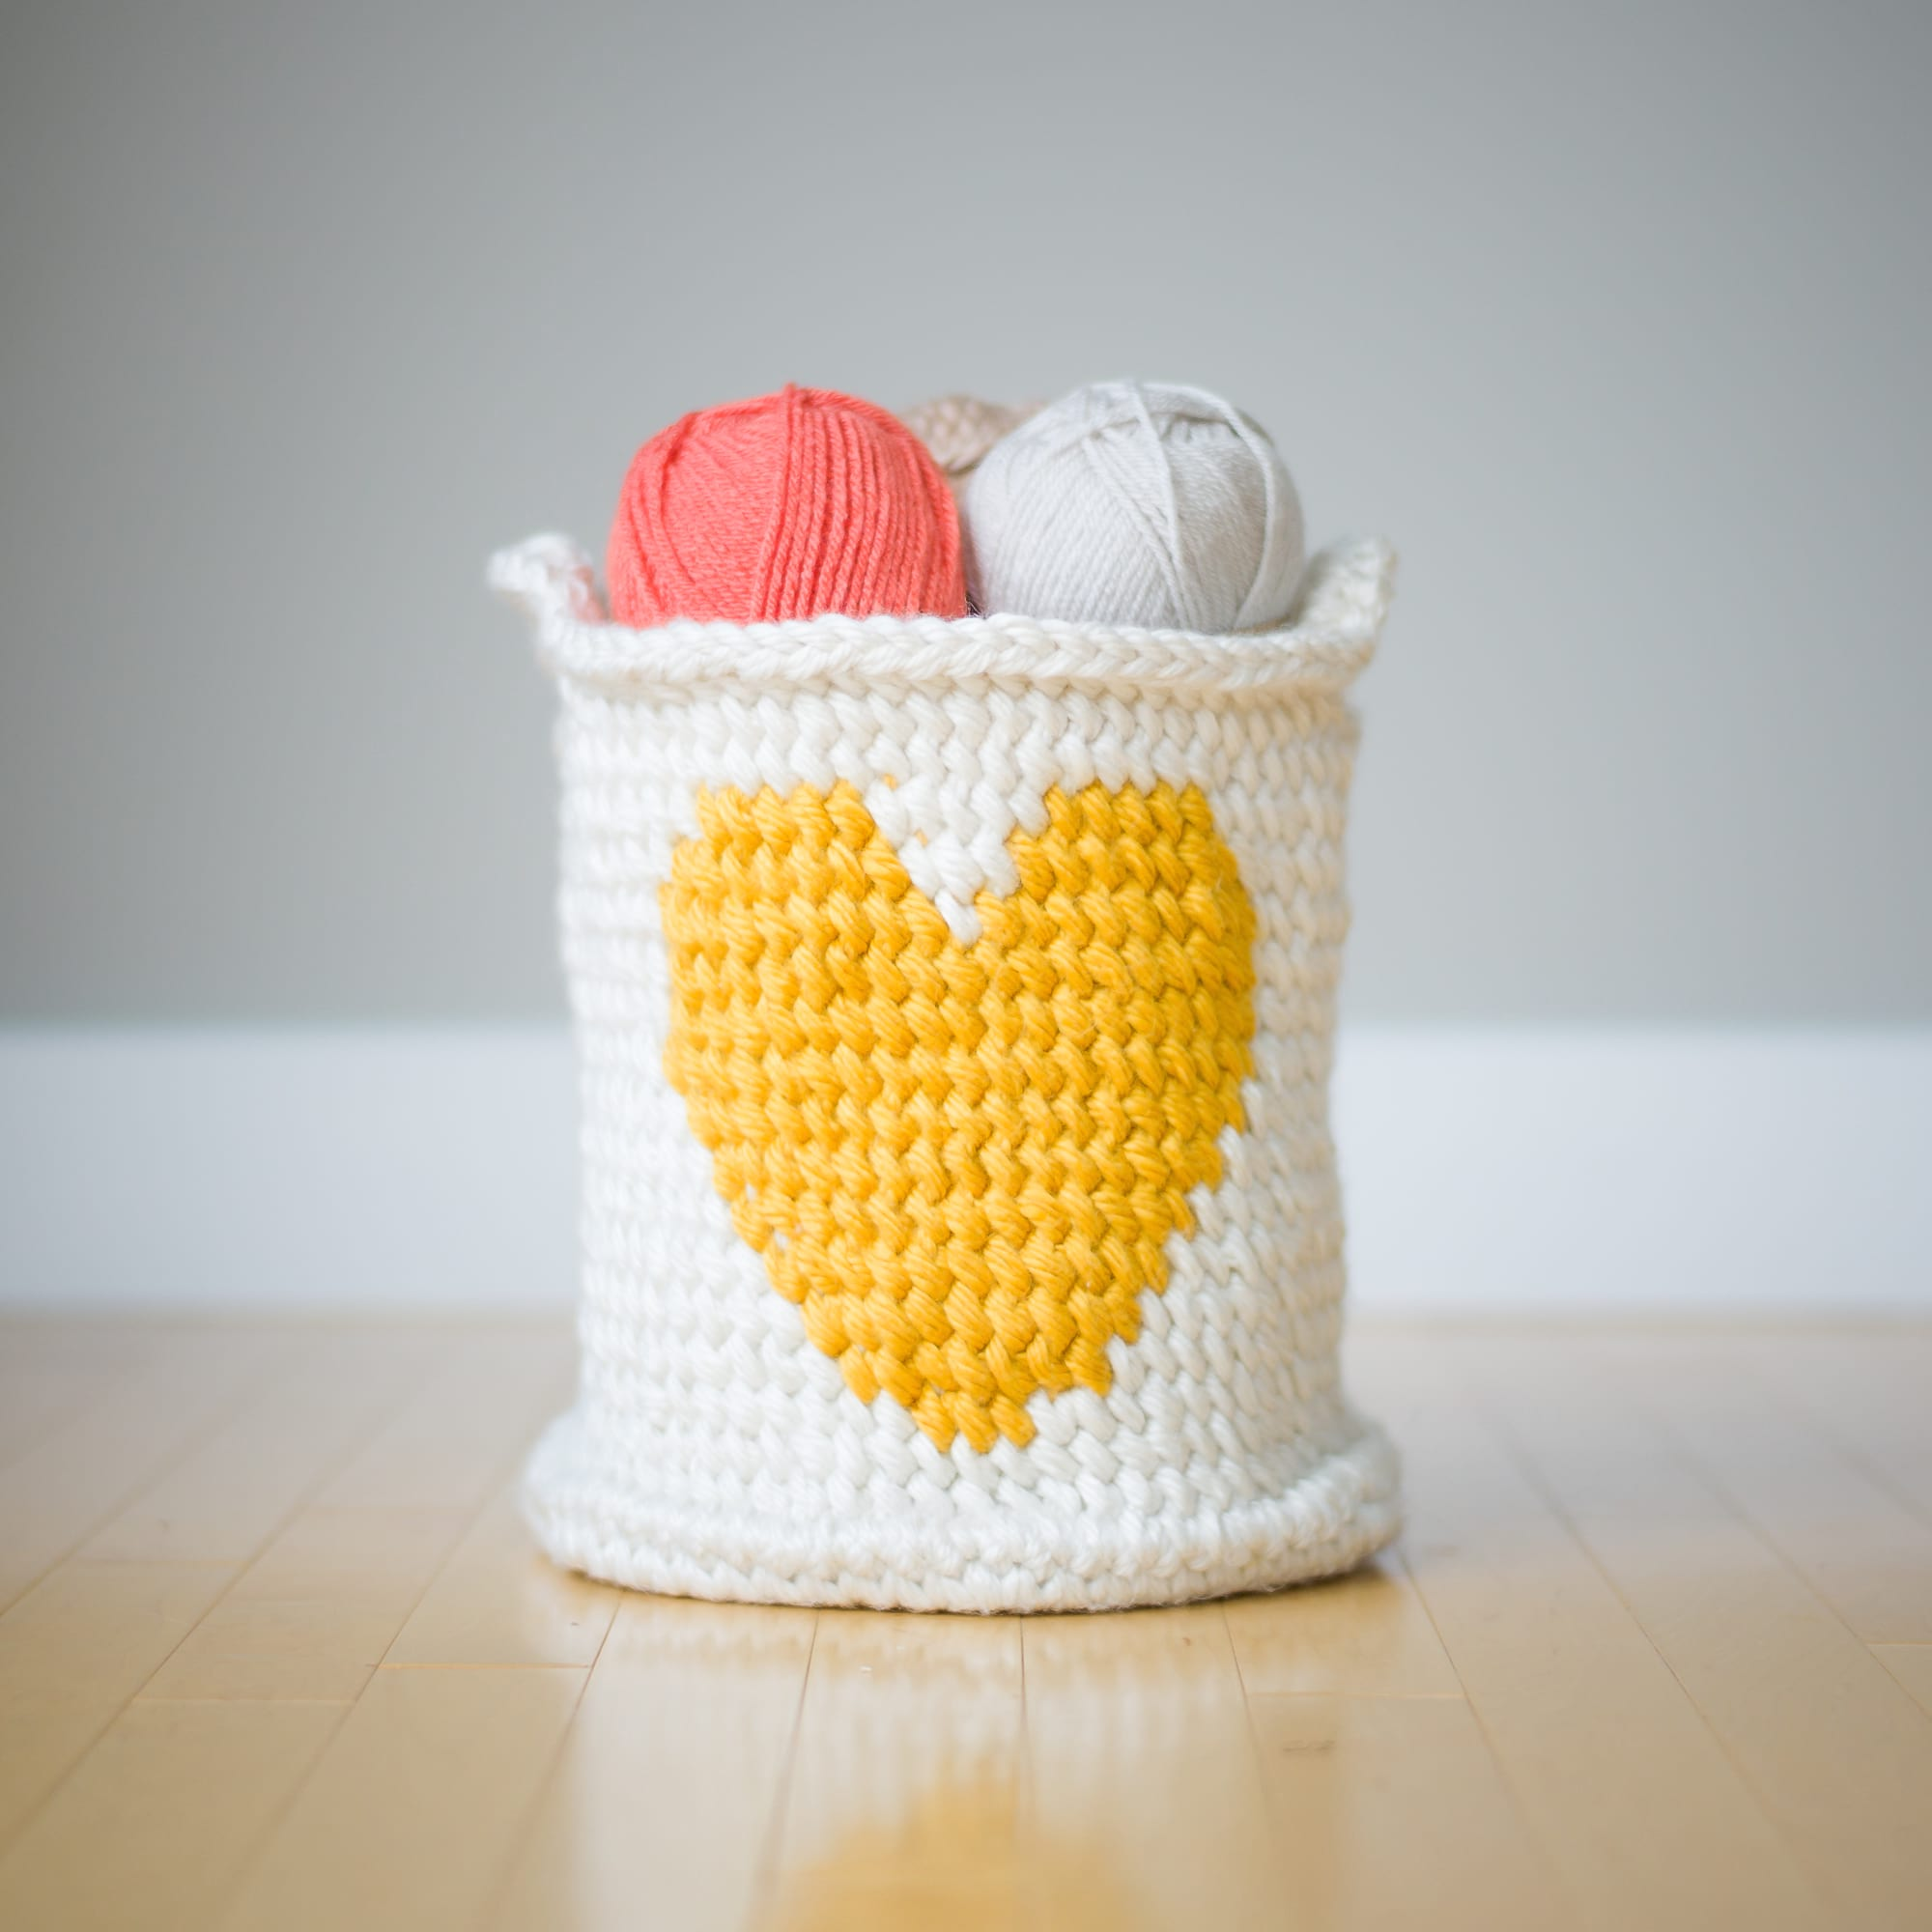 Crochet Heart Basket - All About Ami